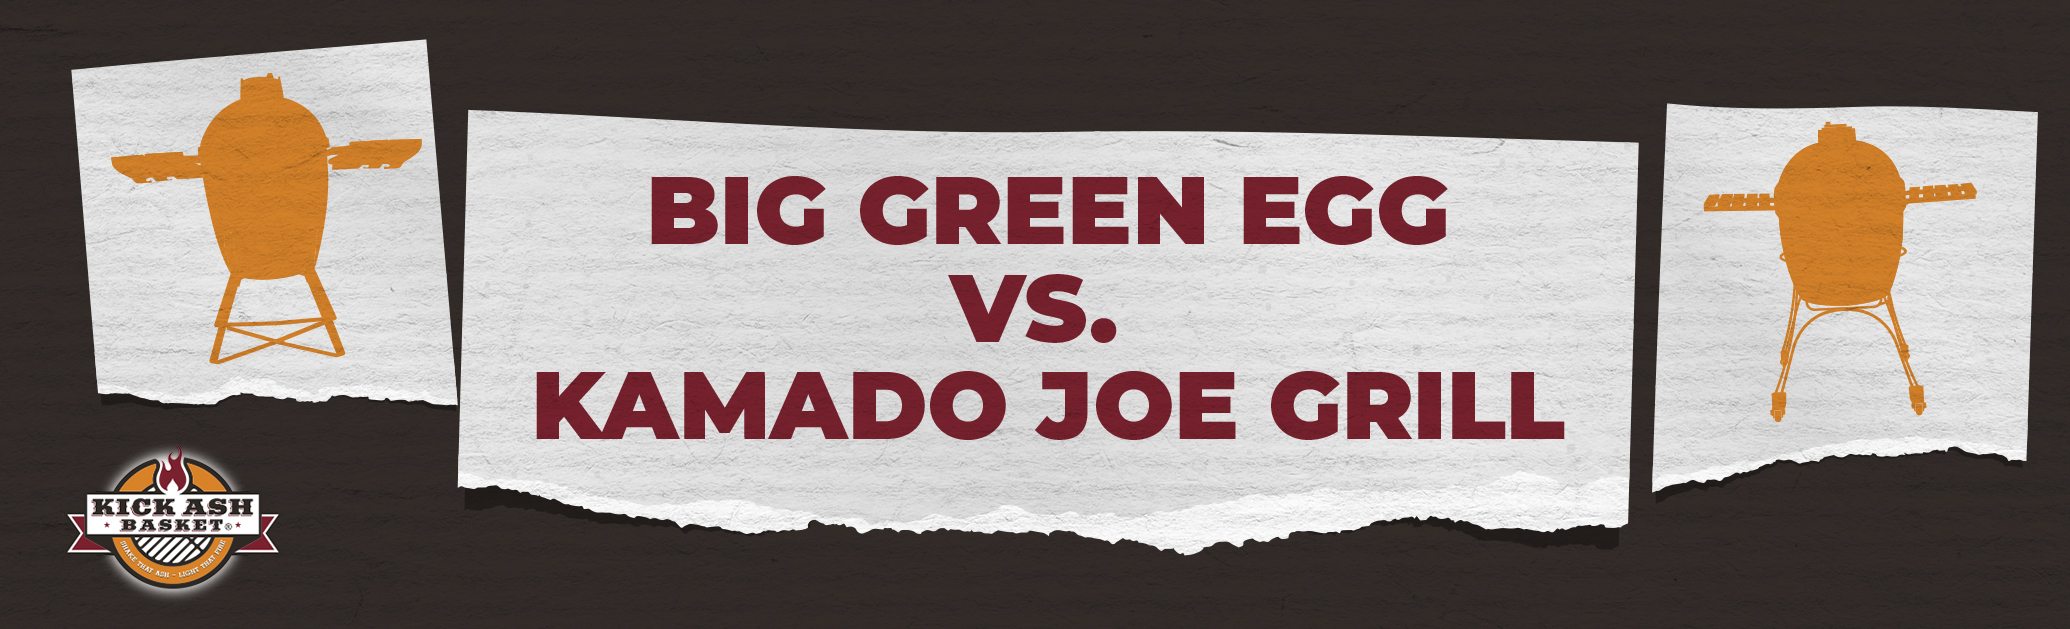 Big Green Egg vs. Kamado Joe Grill